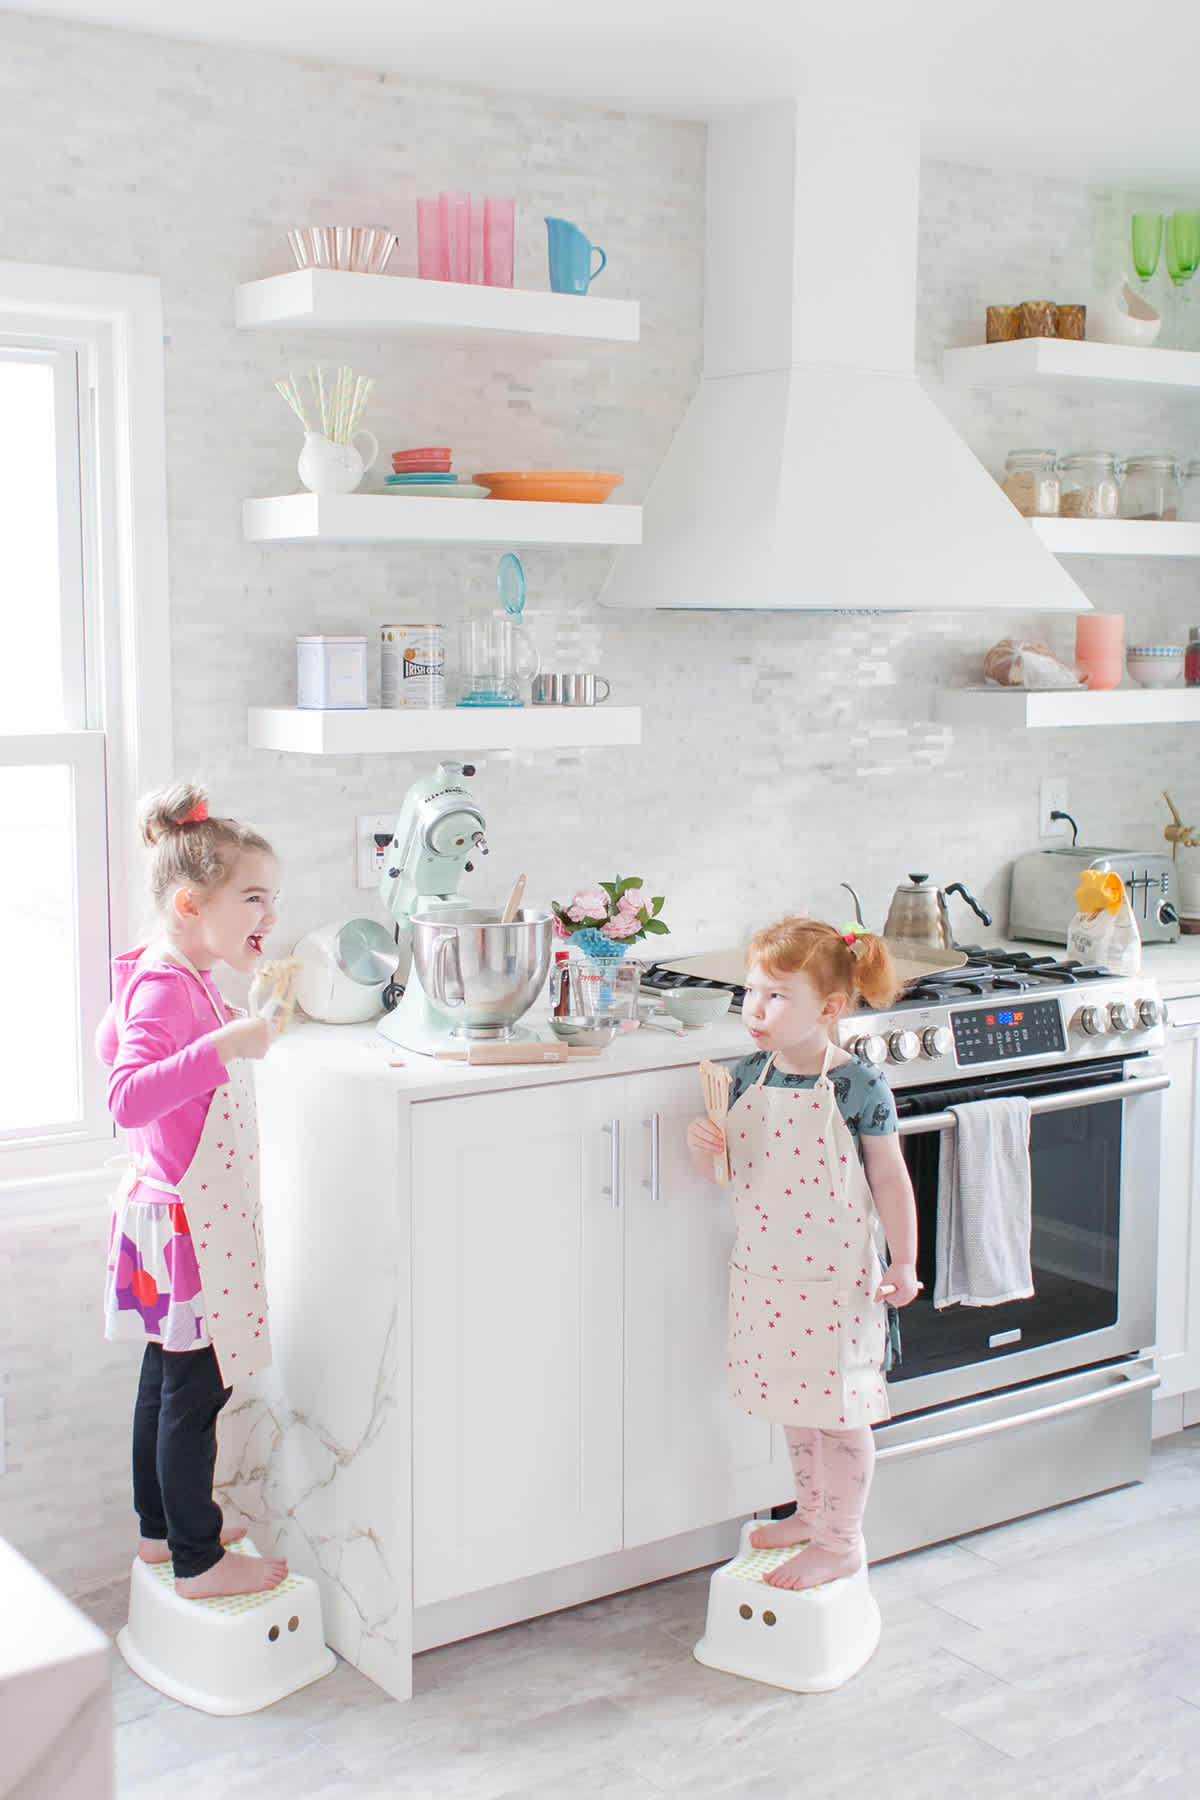 Our New Kitchen Reveal With The Home Depot - Lay Baby Lay